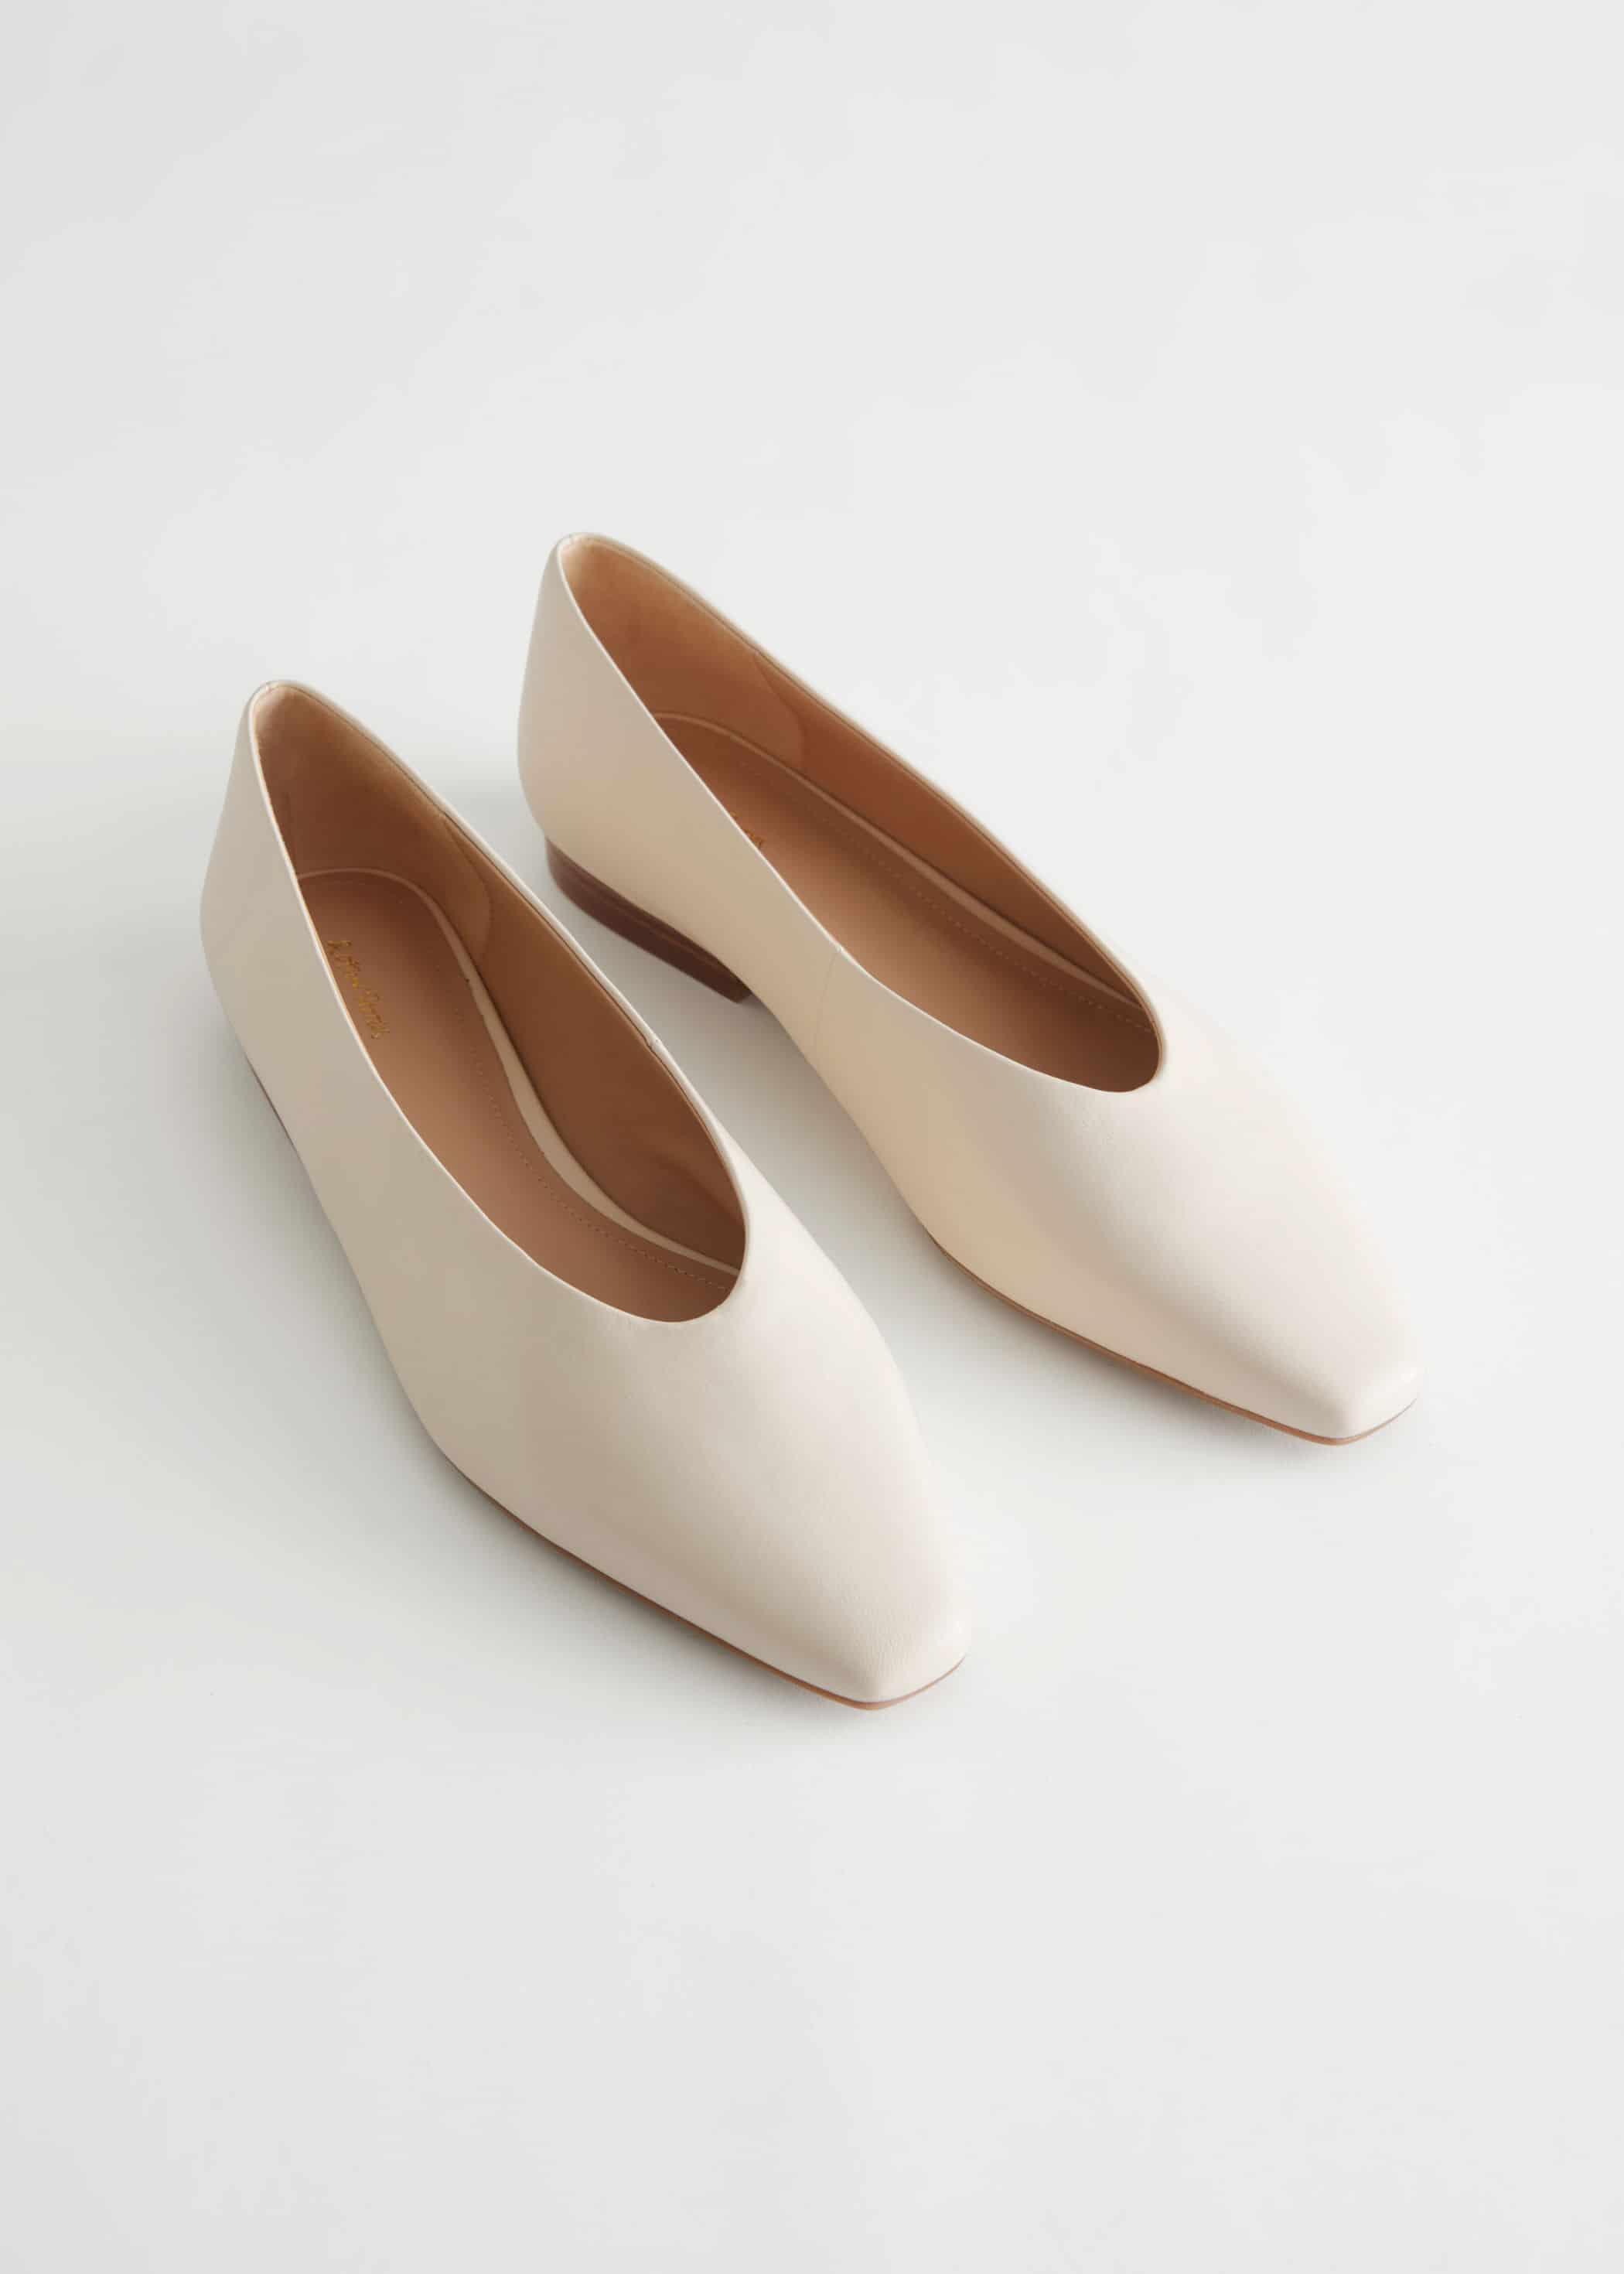 Ballerines en cuir lisse et semelle en gomme, & Other Stories, 79 €.